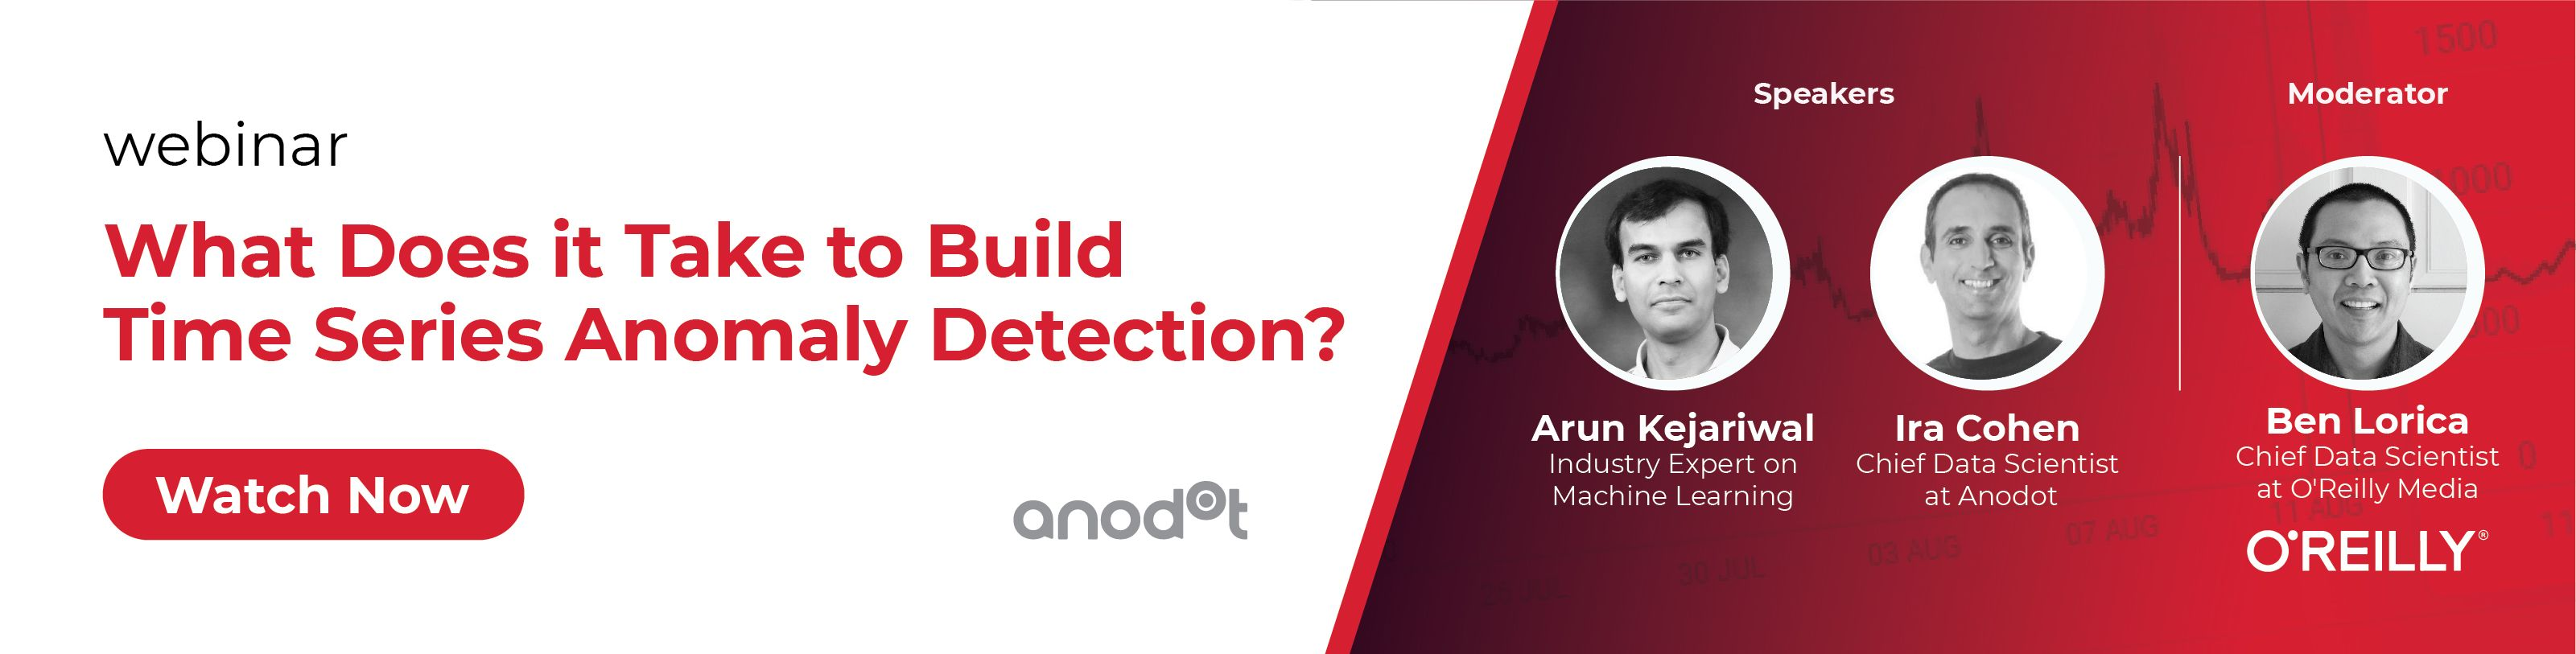 Experts Map Out What's Essential to Time Series Anomaly Detection